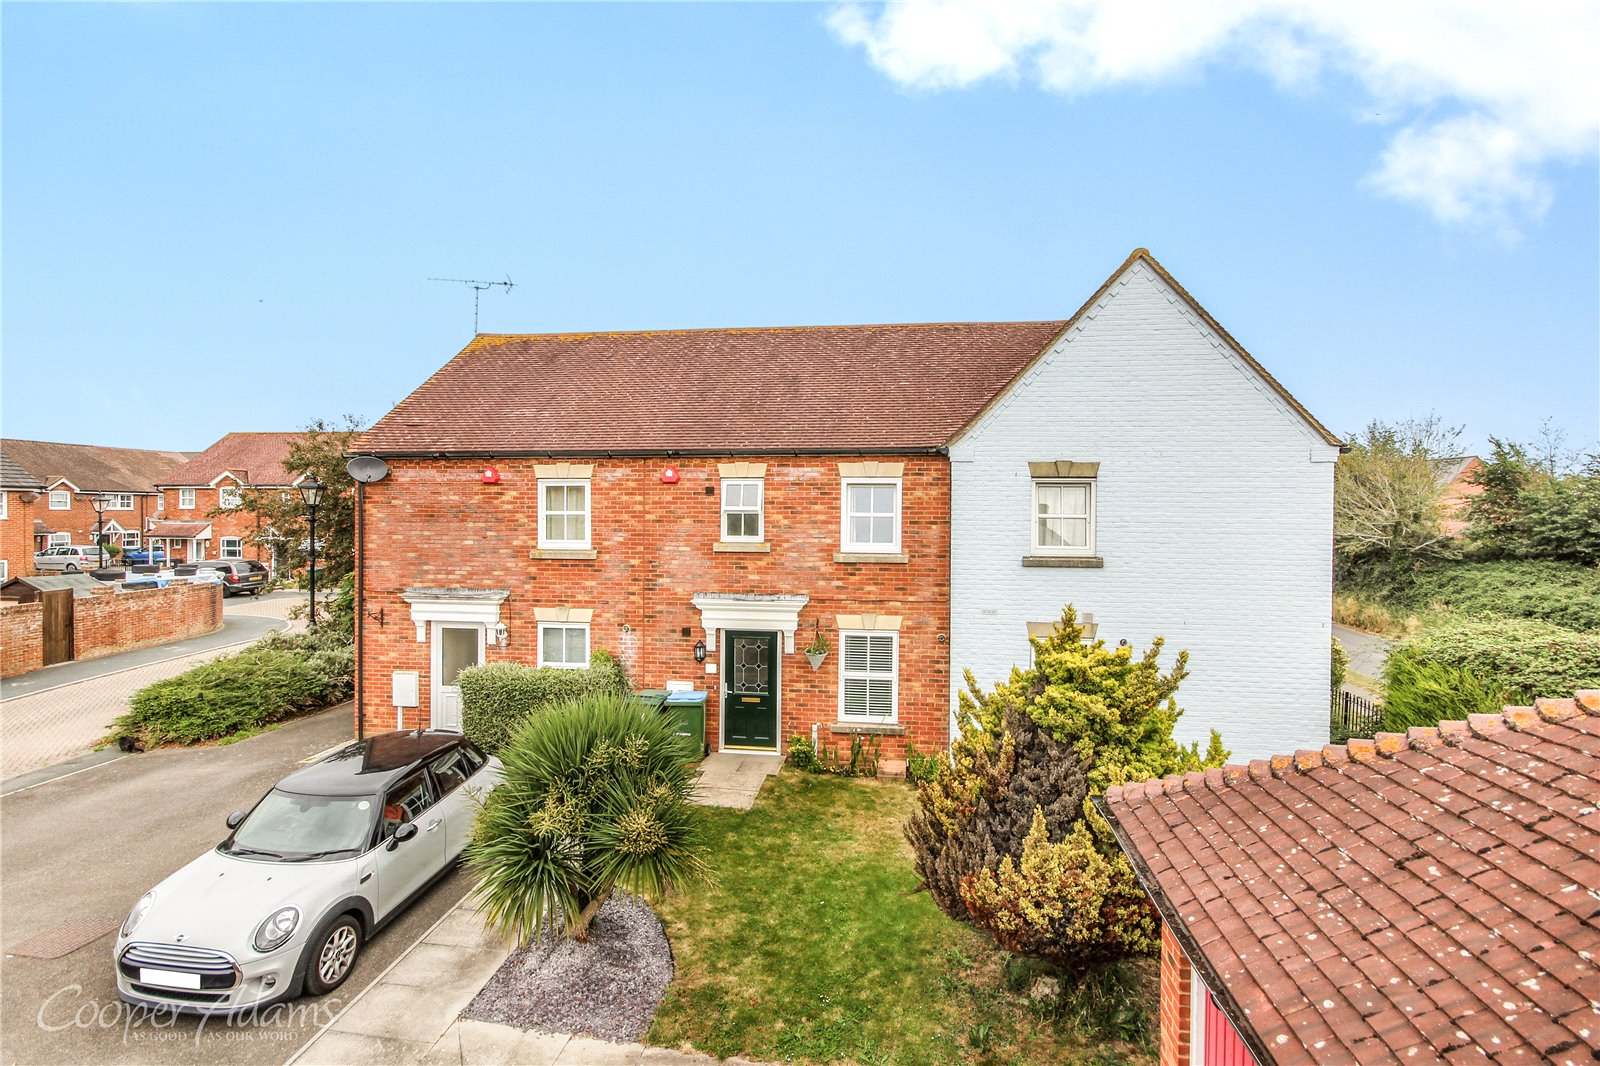 3 bed house for sale in Wilkinson Close, Angmering, BN16